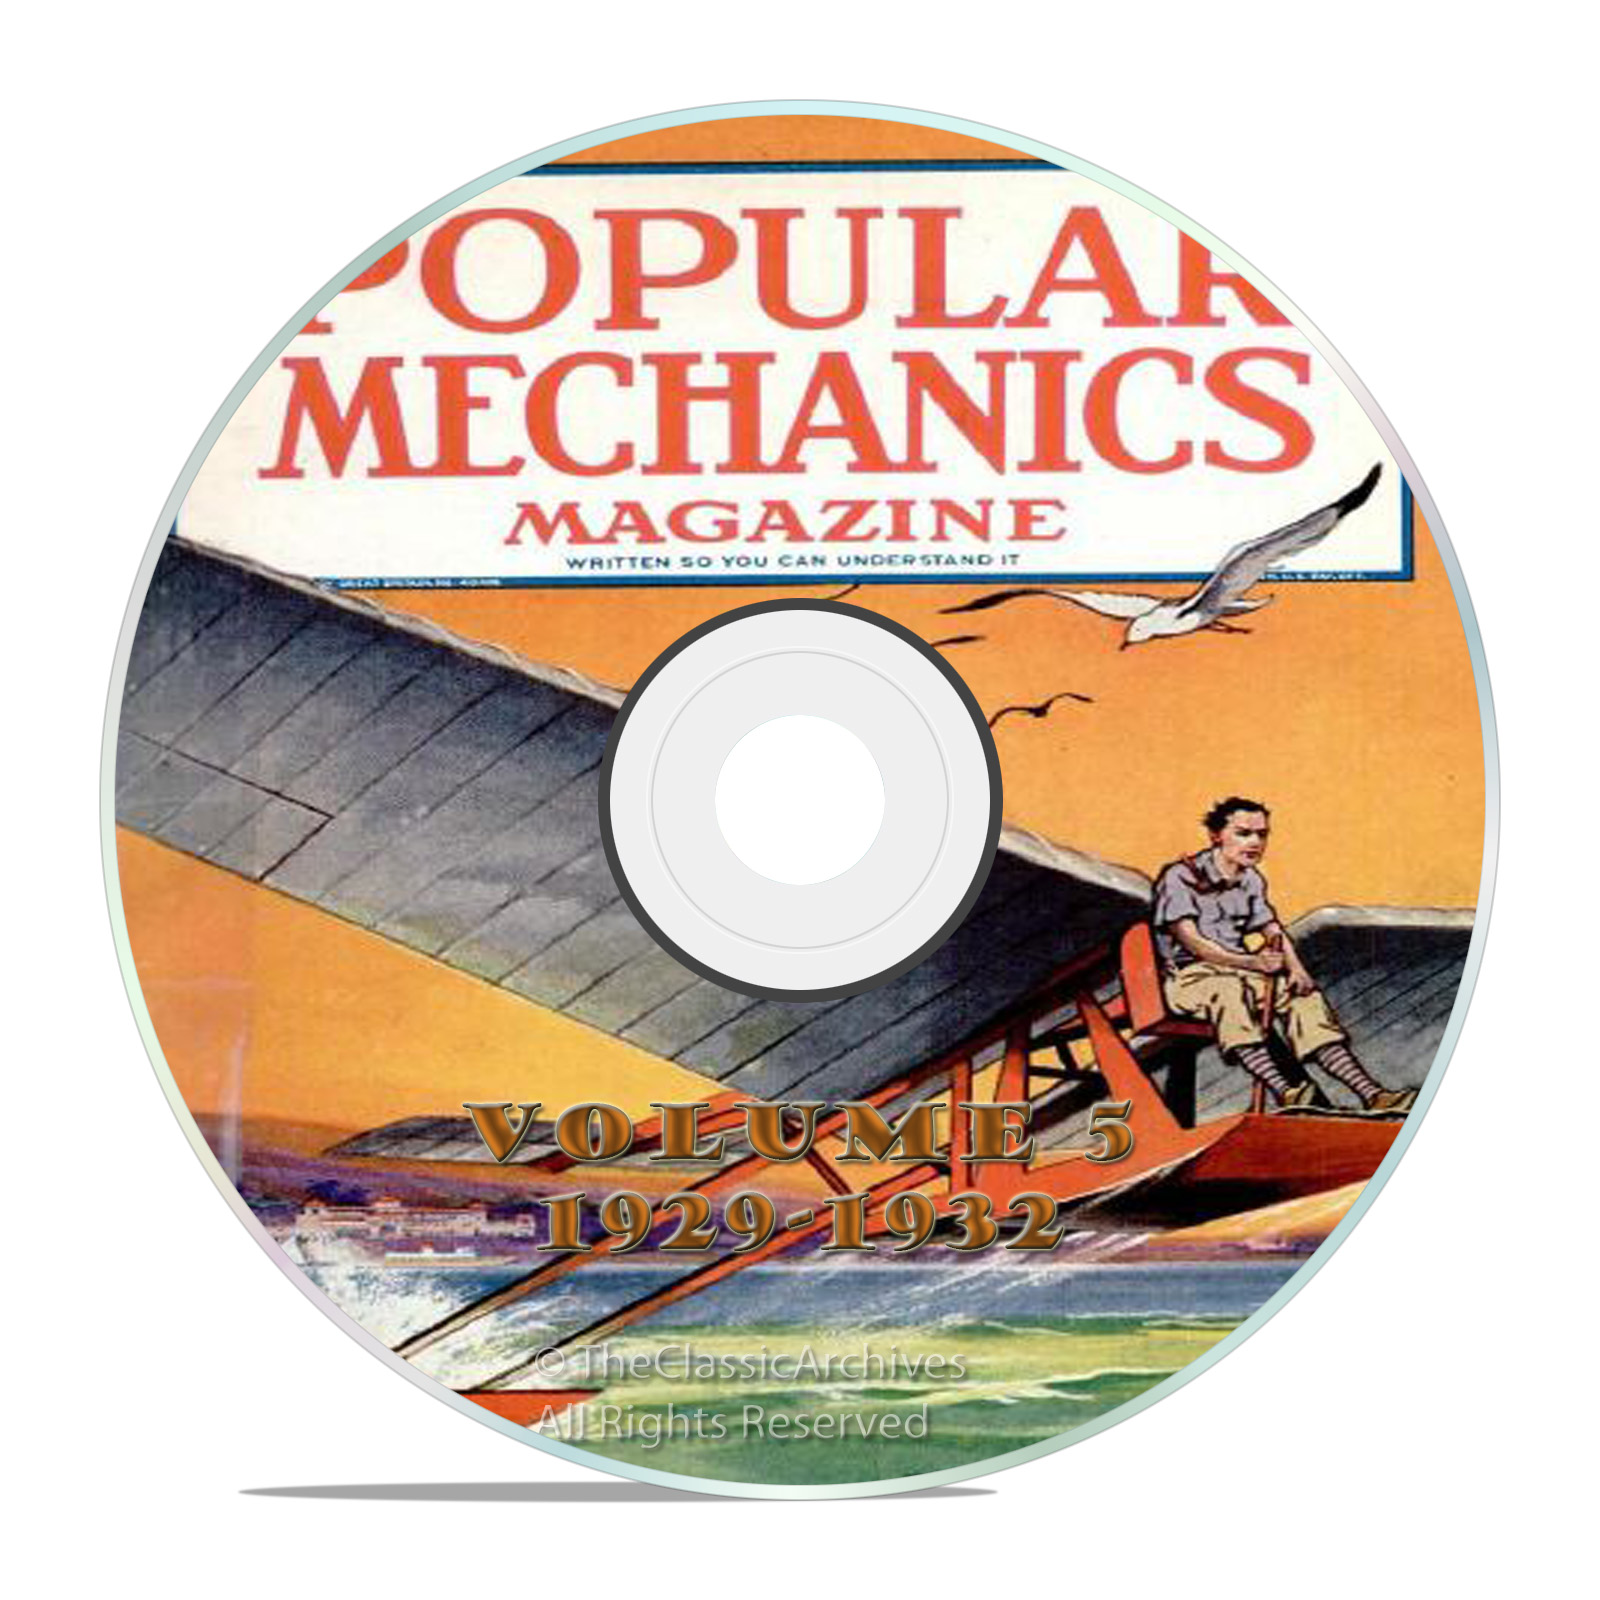 Vintage Popular Mechanics Magazine, Volume 5 DVD, 1929-1932, 37 issues